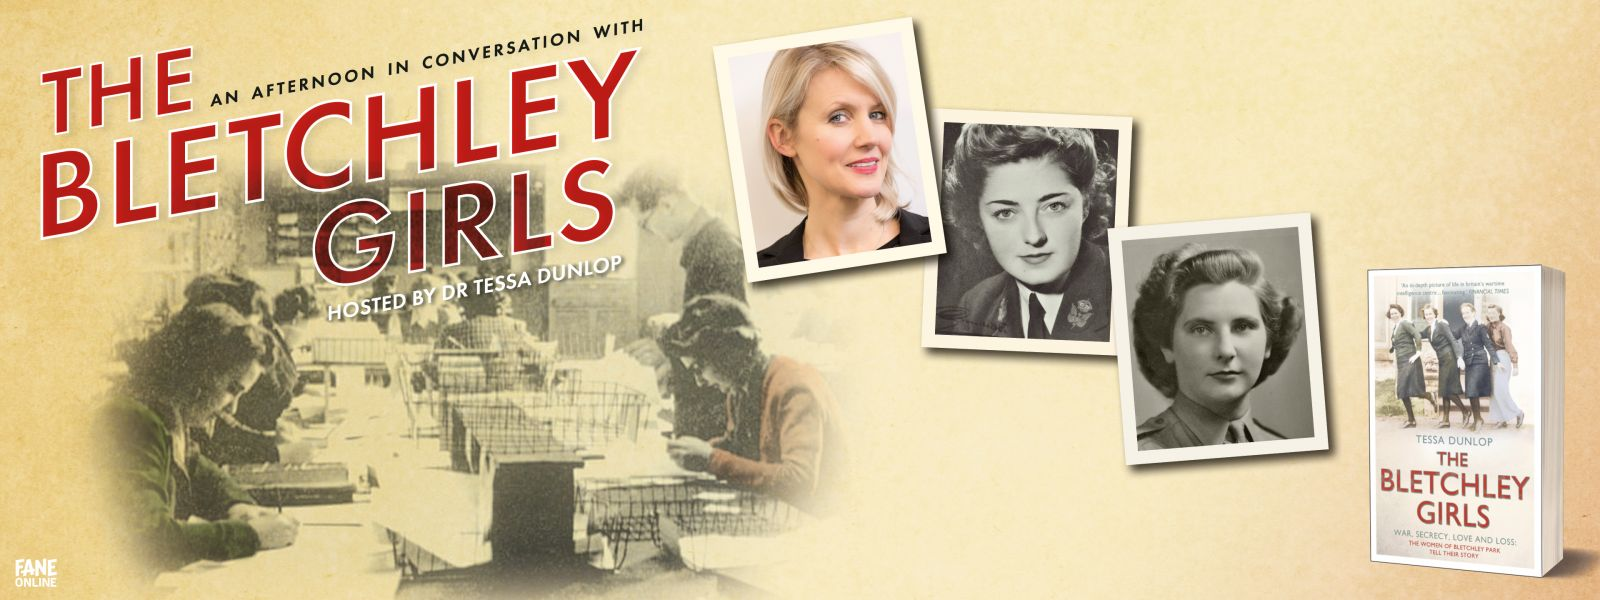 An Afternoon in Conversation with The Bletchley Girls